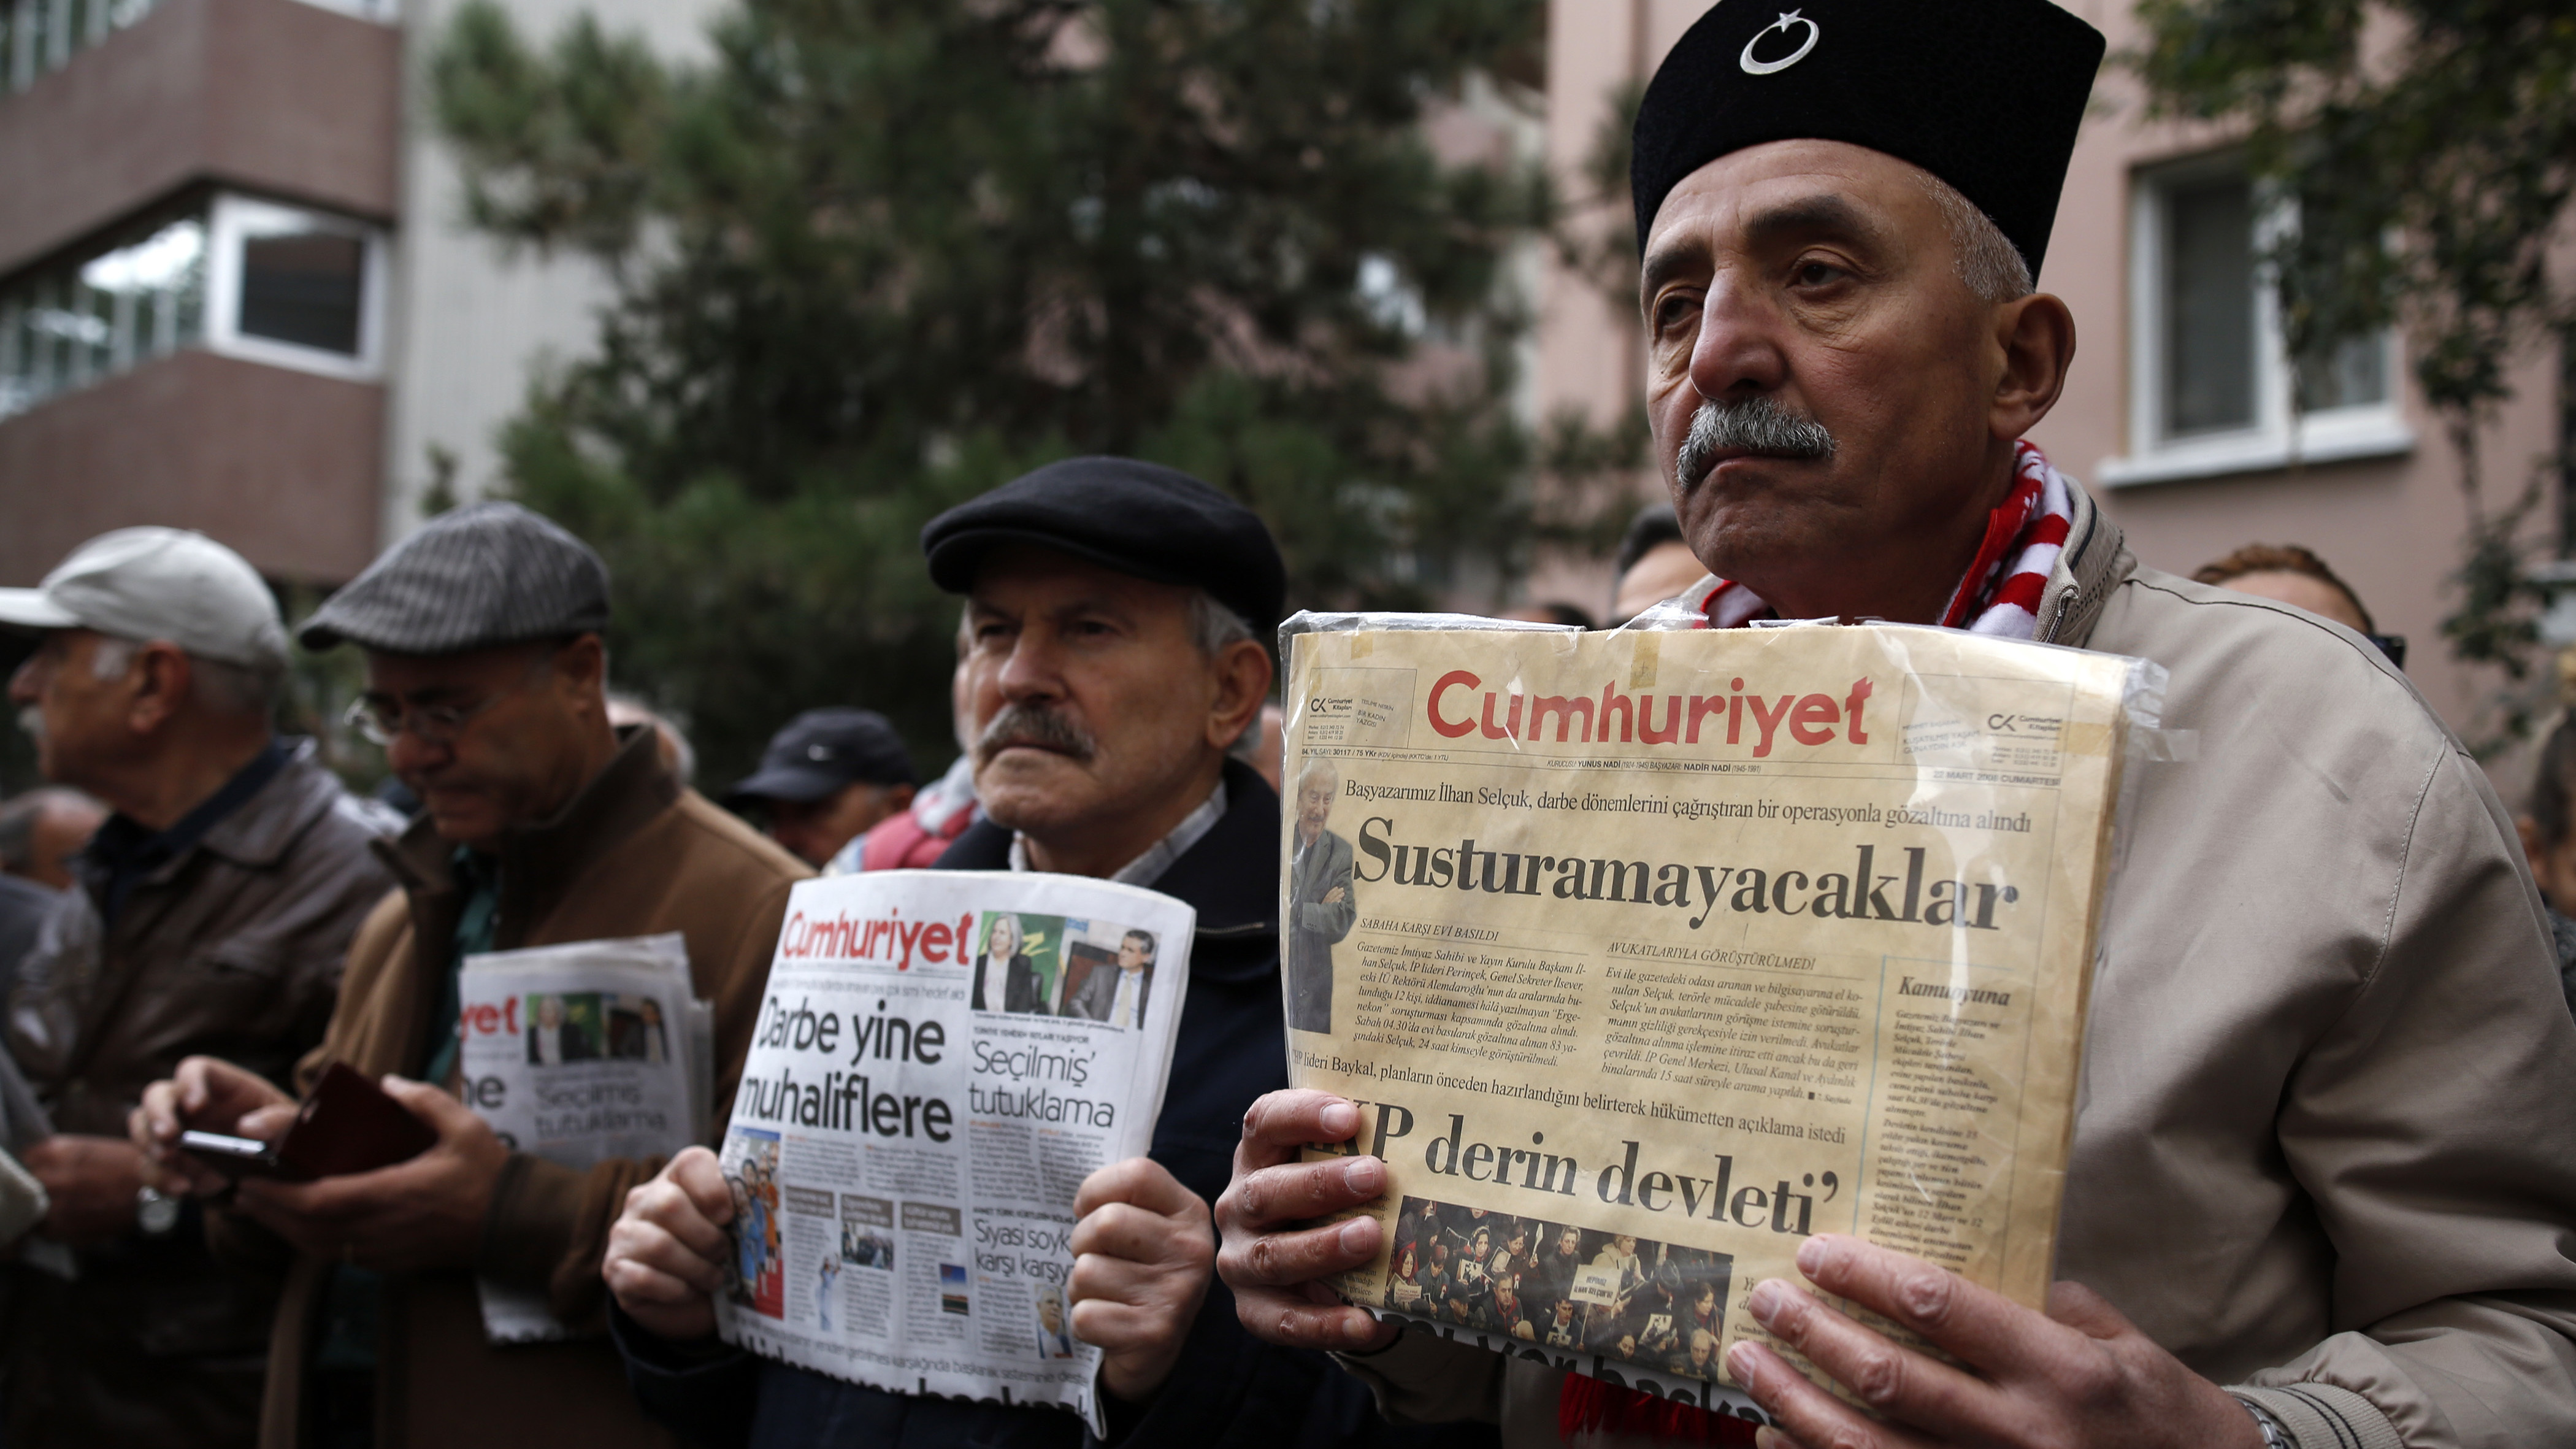 Turkey's PM Rejects Europe's 'Red Line' On Freedom of the Press